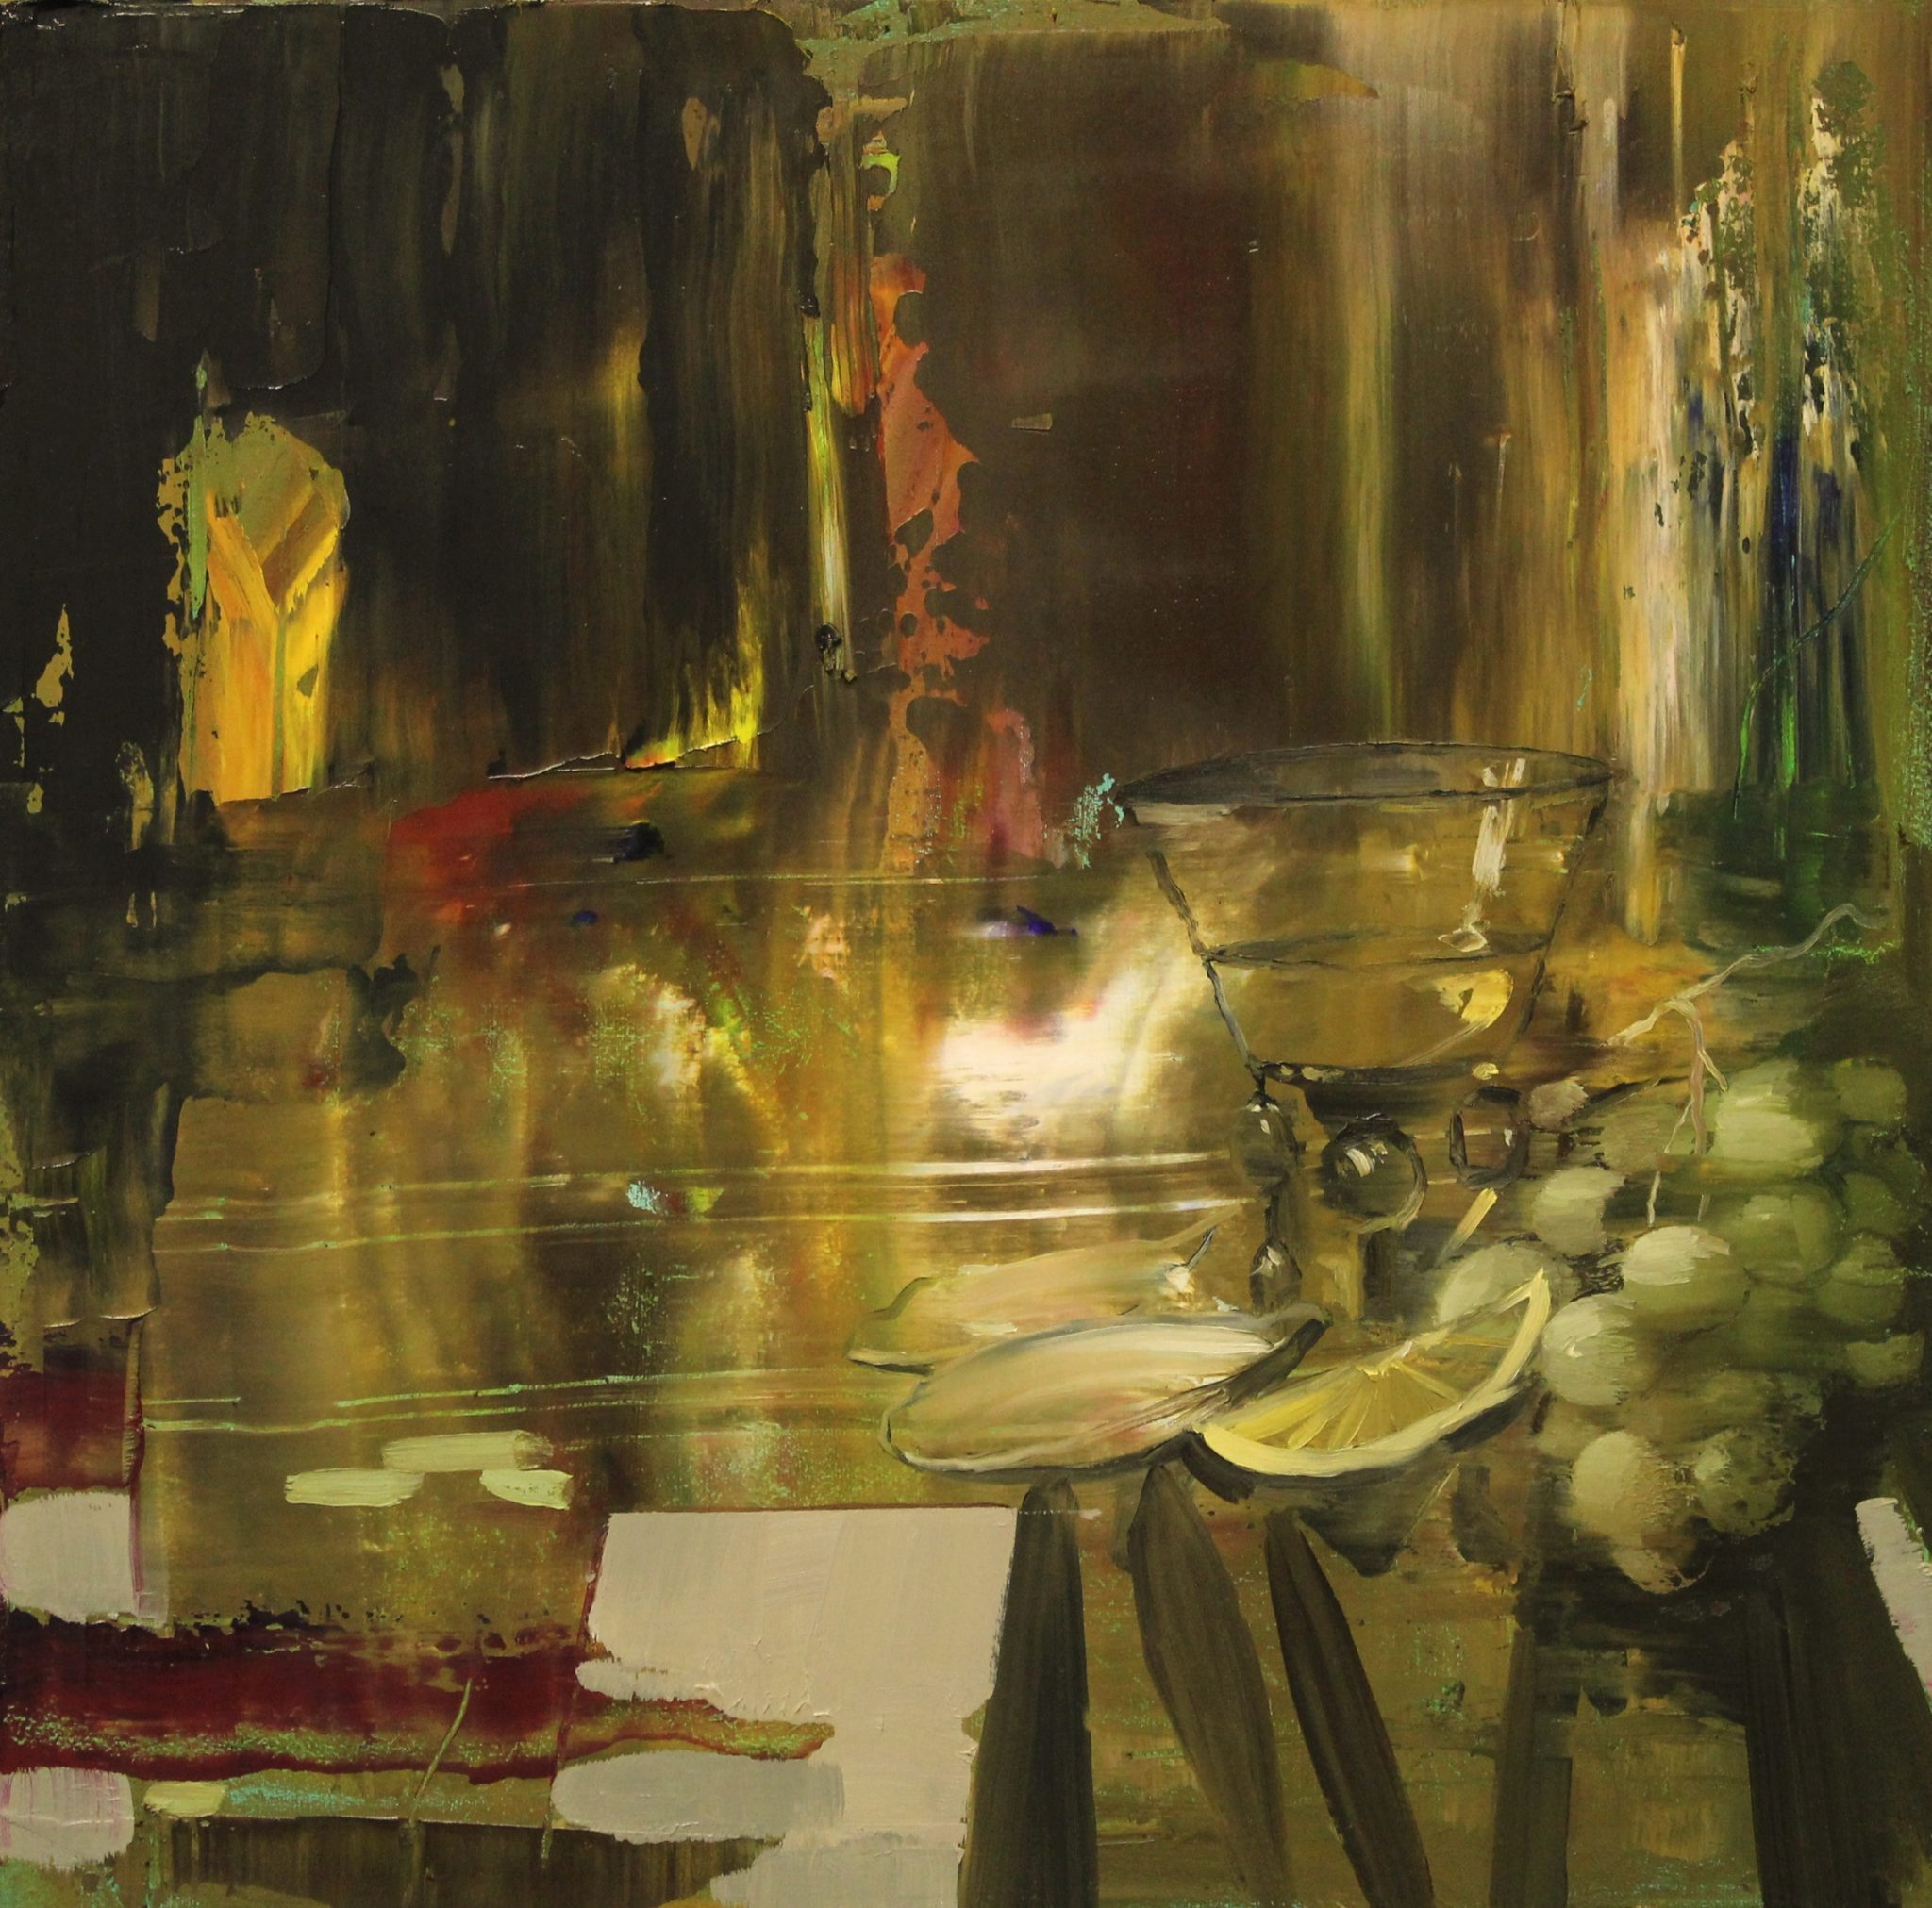 Still Life Study - After Jan Davidsz De Heem